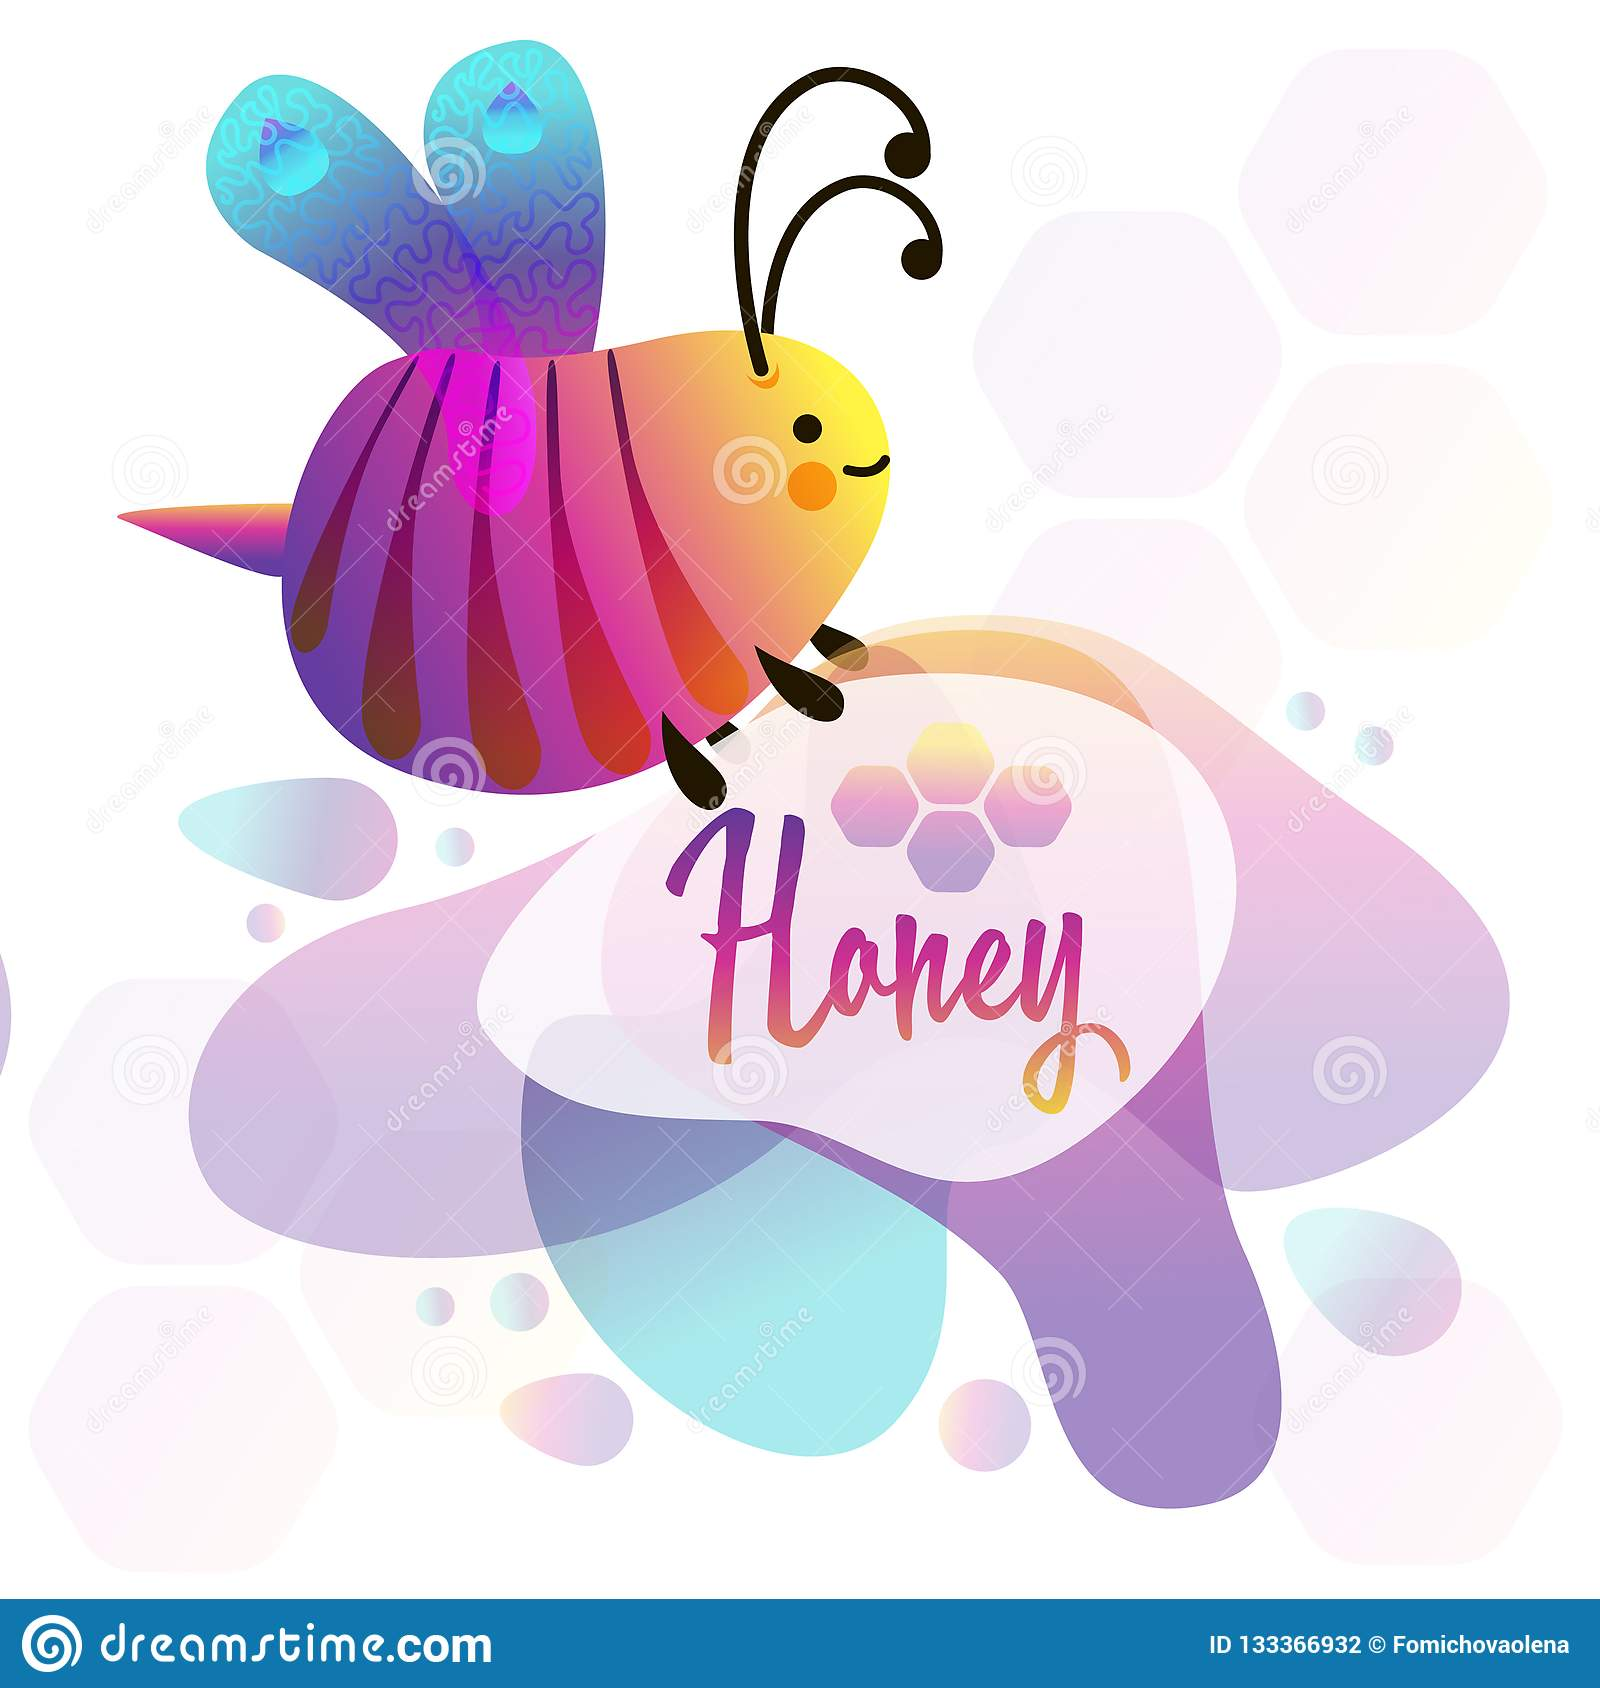 Colorful cartoon bright little bee. Smile and happy insect. Fluid geometric abstract shape